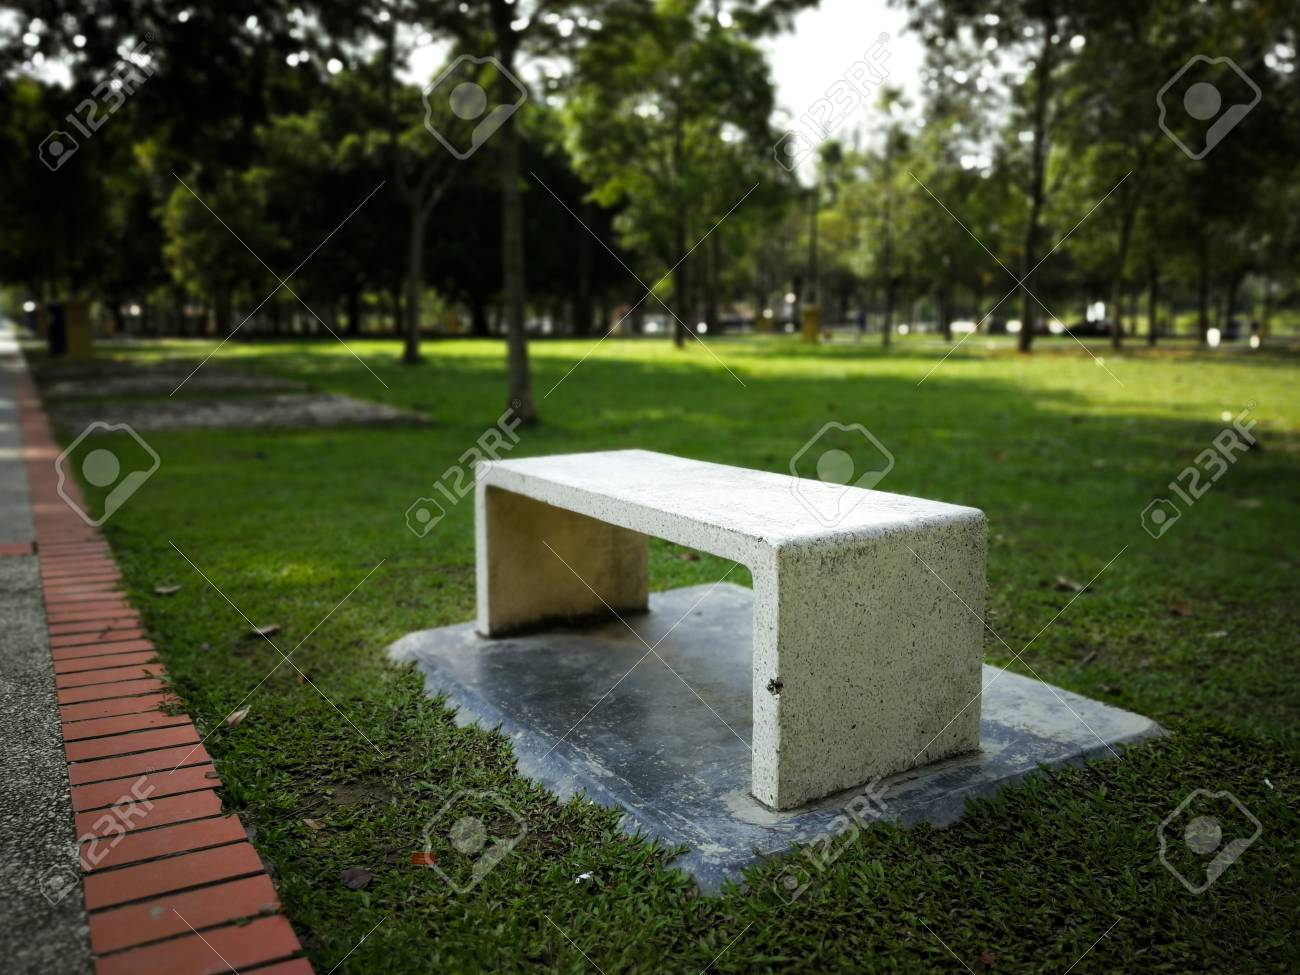 Concrete Park Bench Nobody Sit In The Green Grass Park And Red